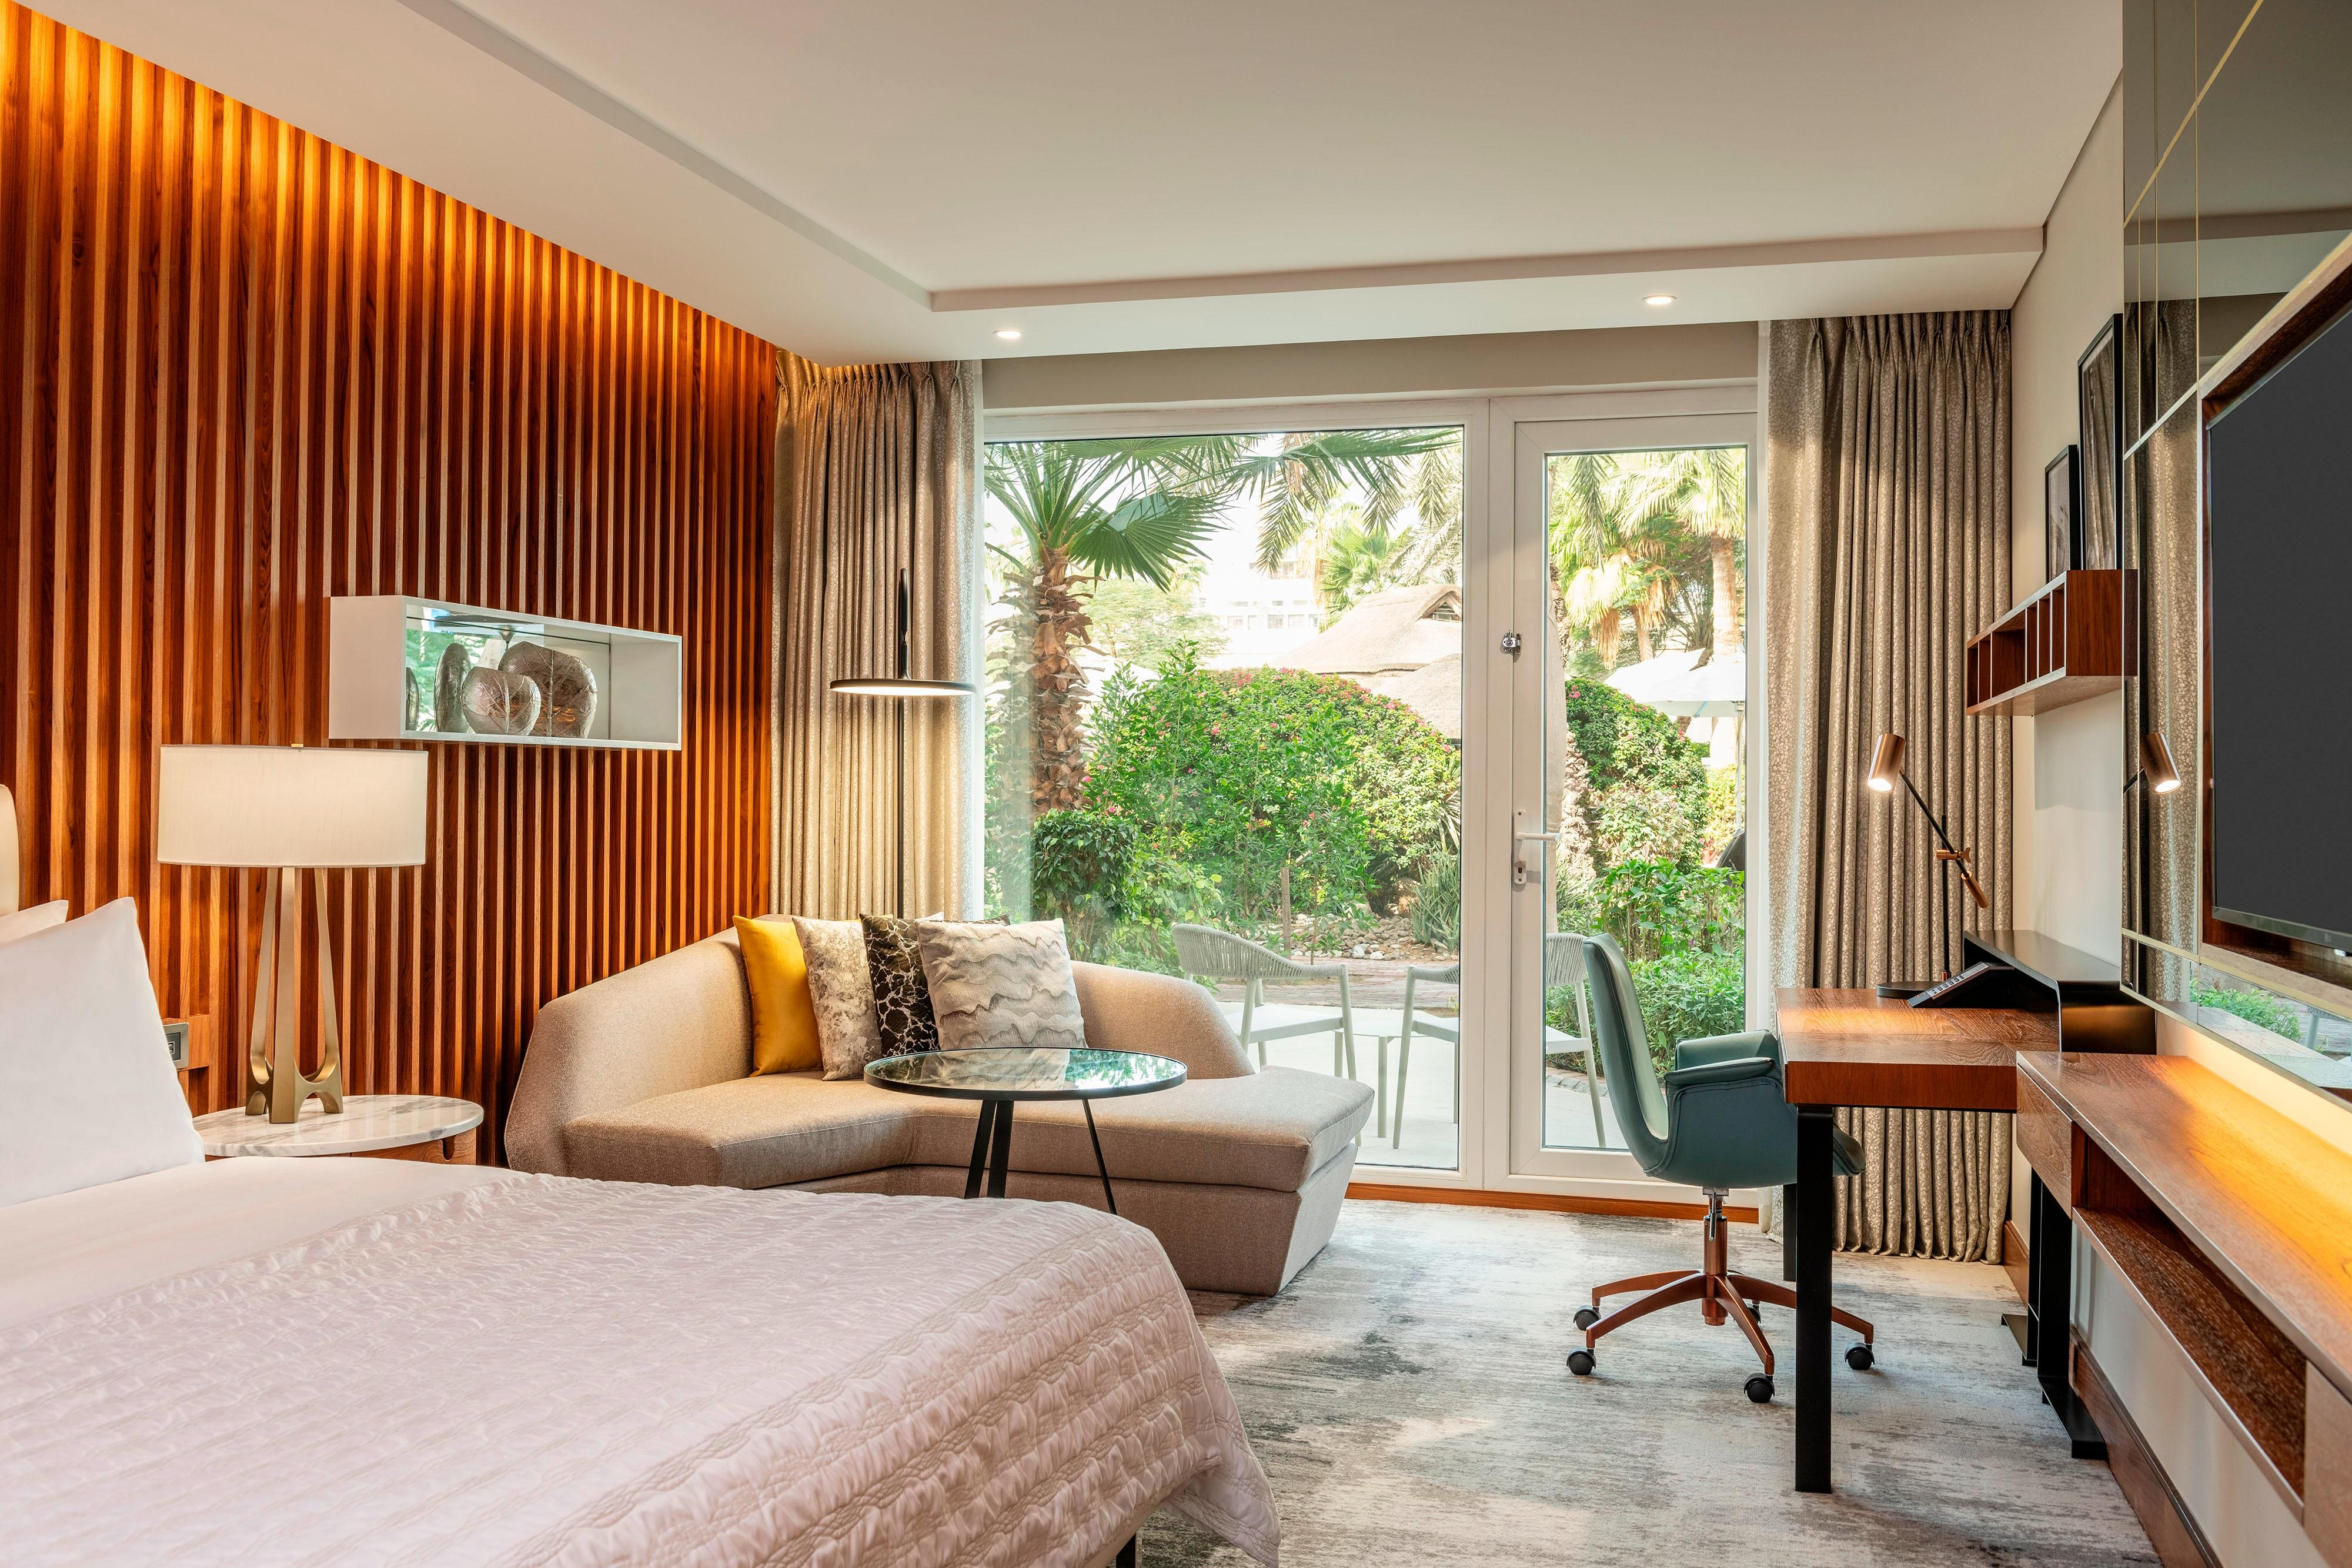 Queen Deluxe Guest Room With A Pool/Garden View